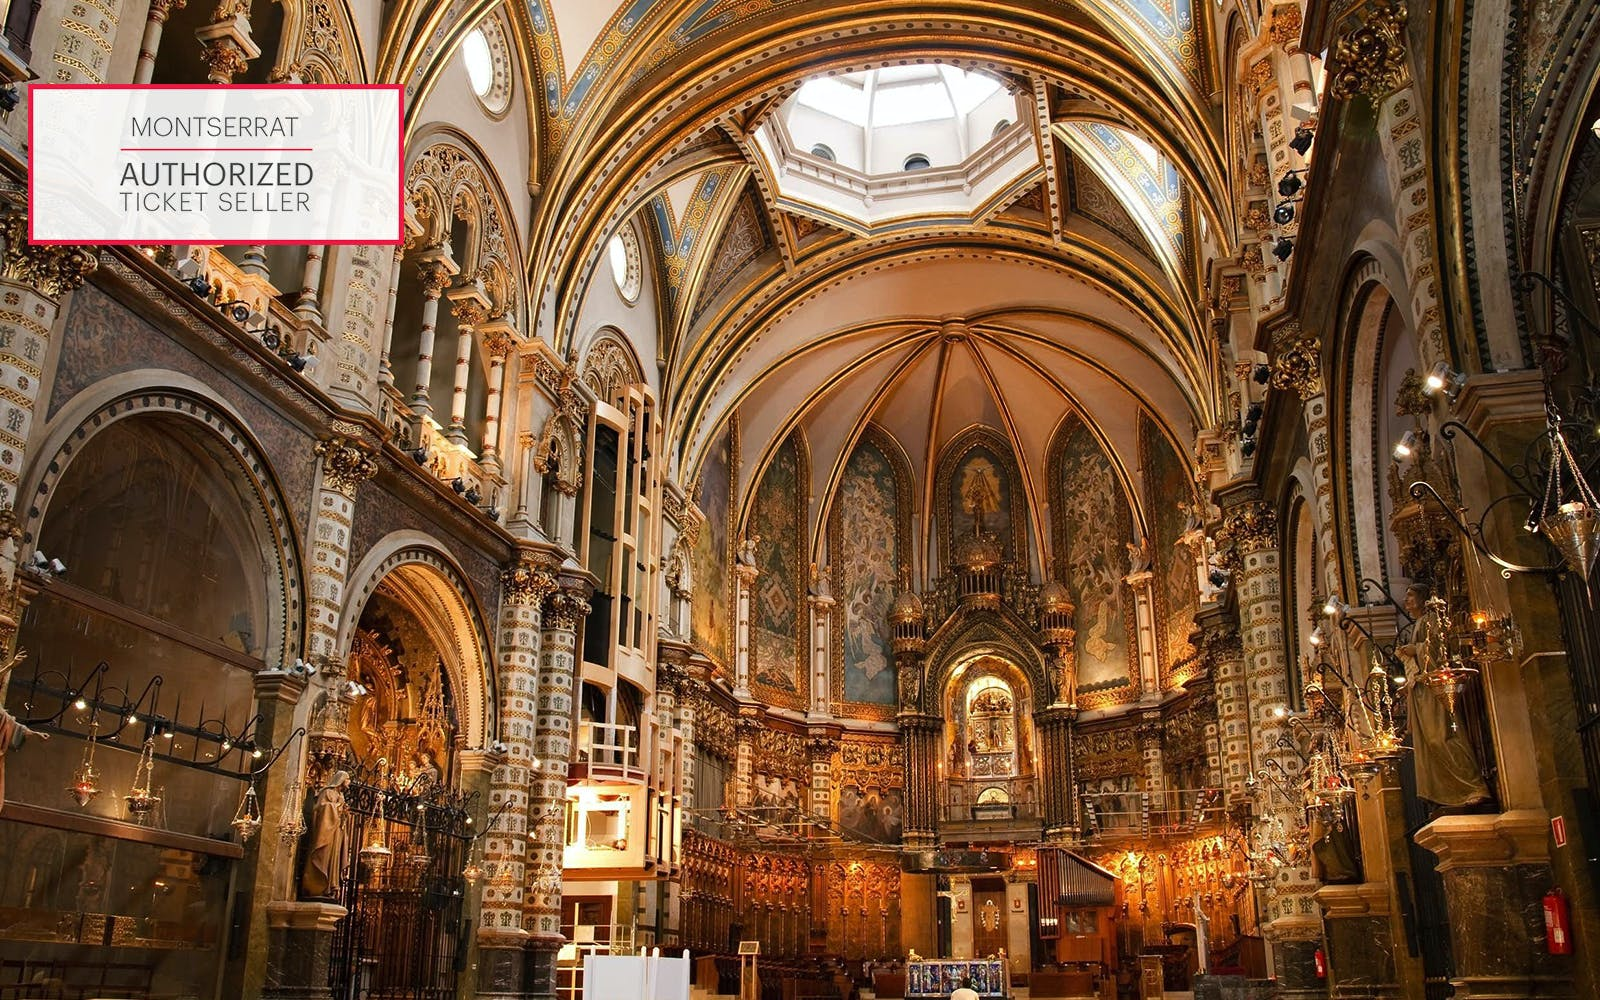 visit to montserrat museum and sanctuary with audio guide-4